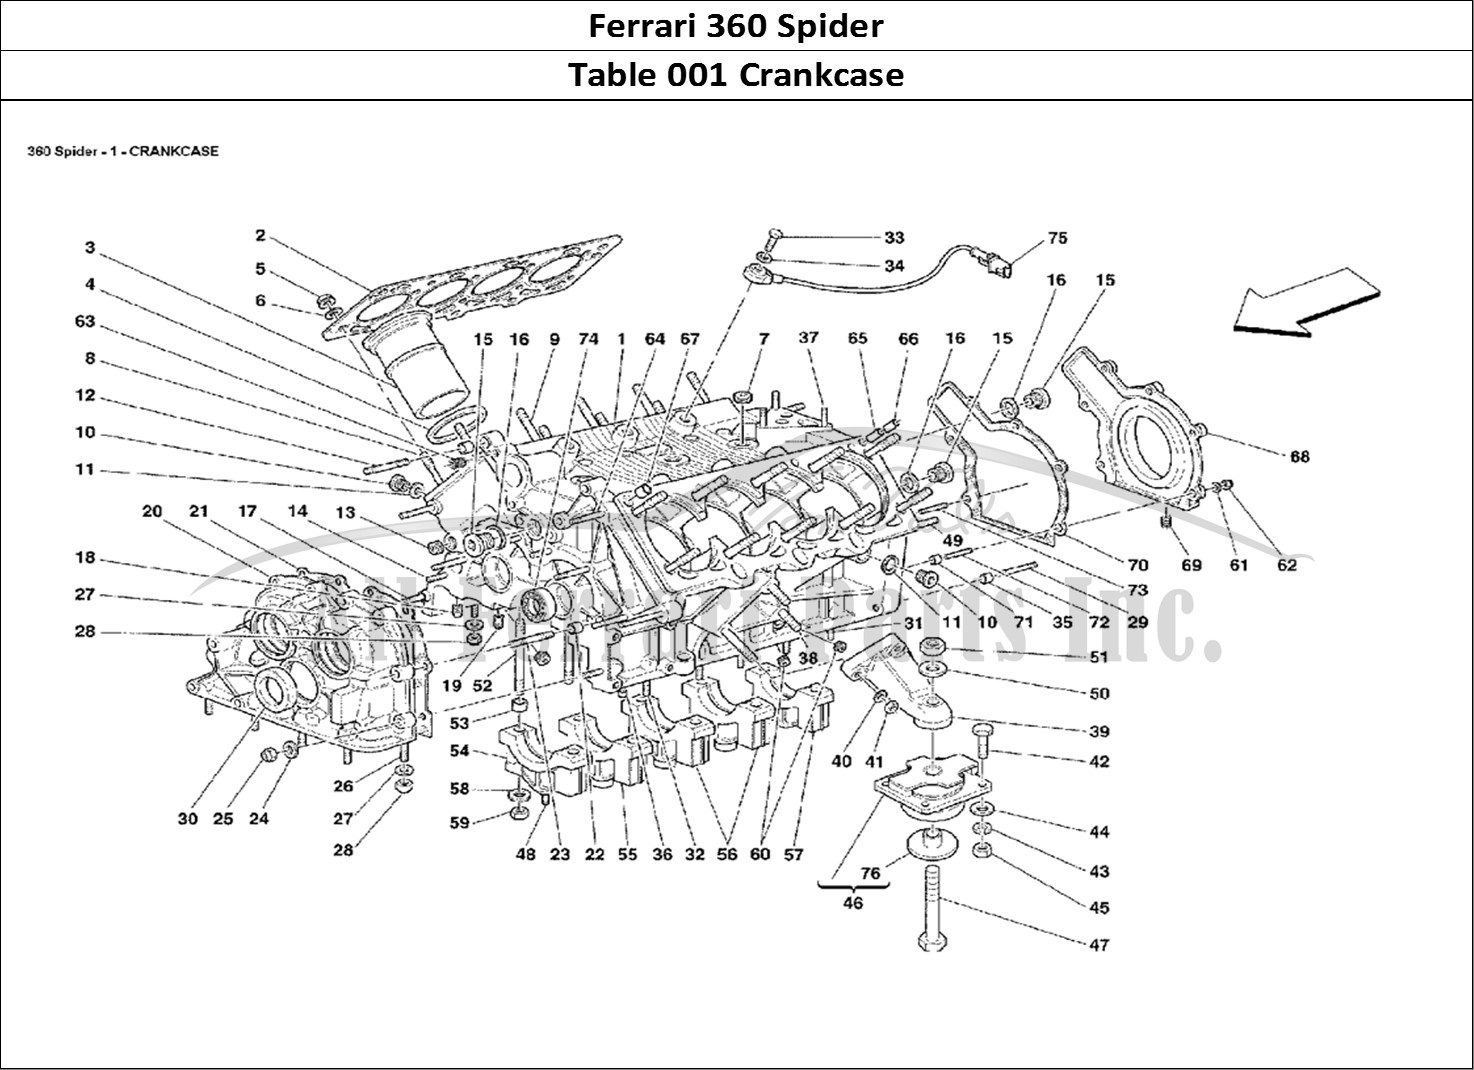 buy original ferrari 360 spider 001 crankcase ferrari parts  spares  accessories online